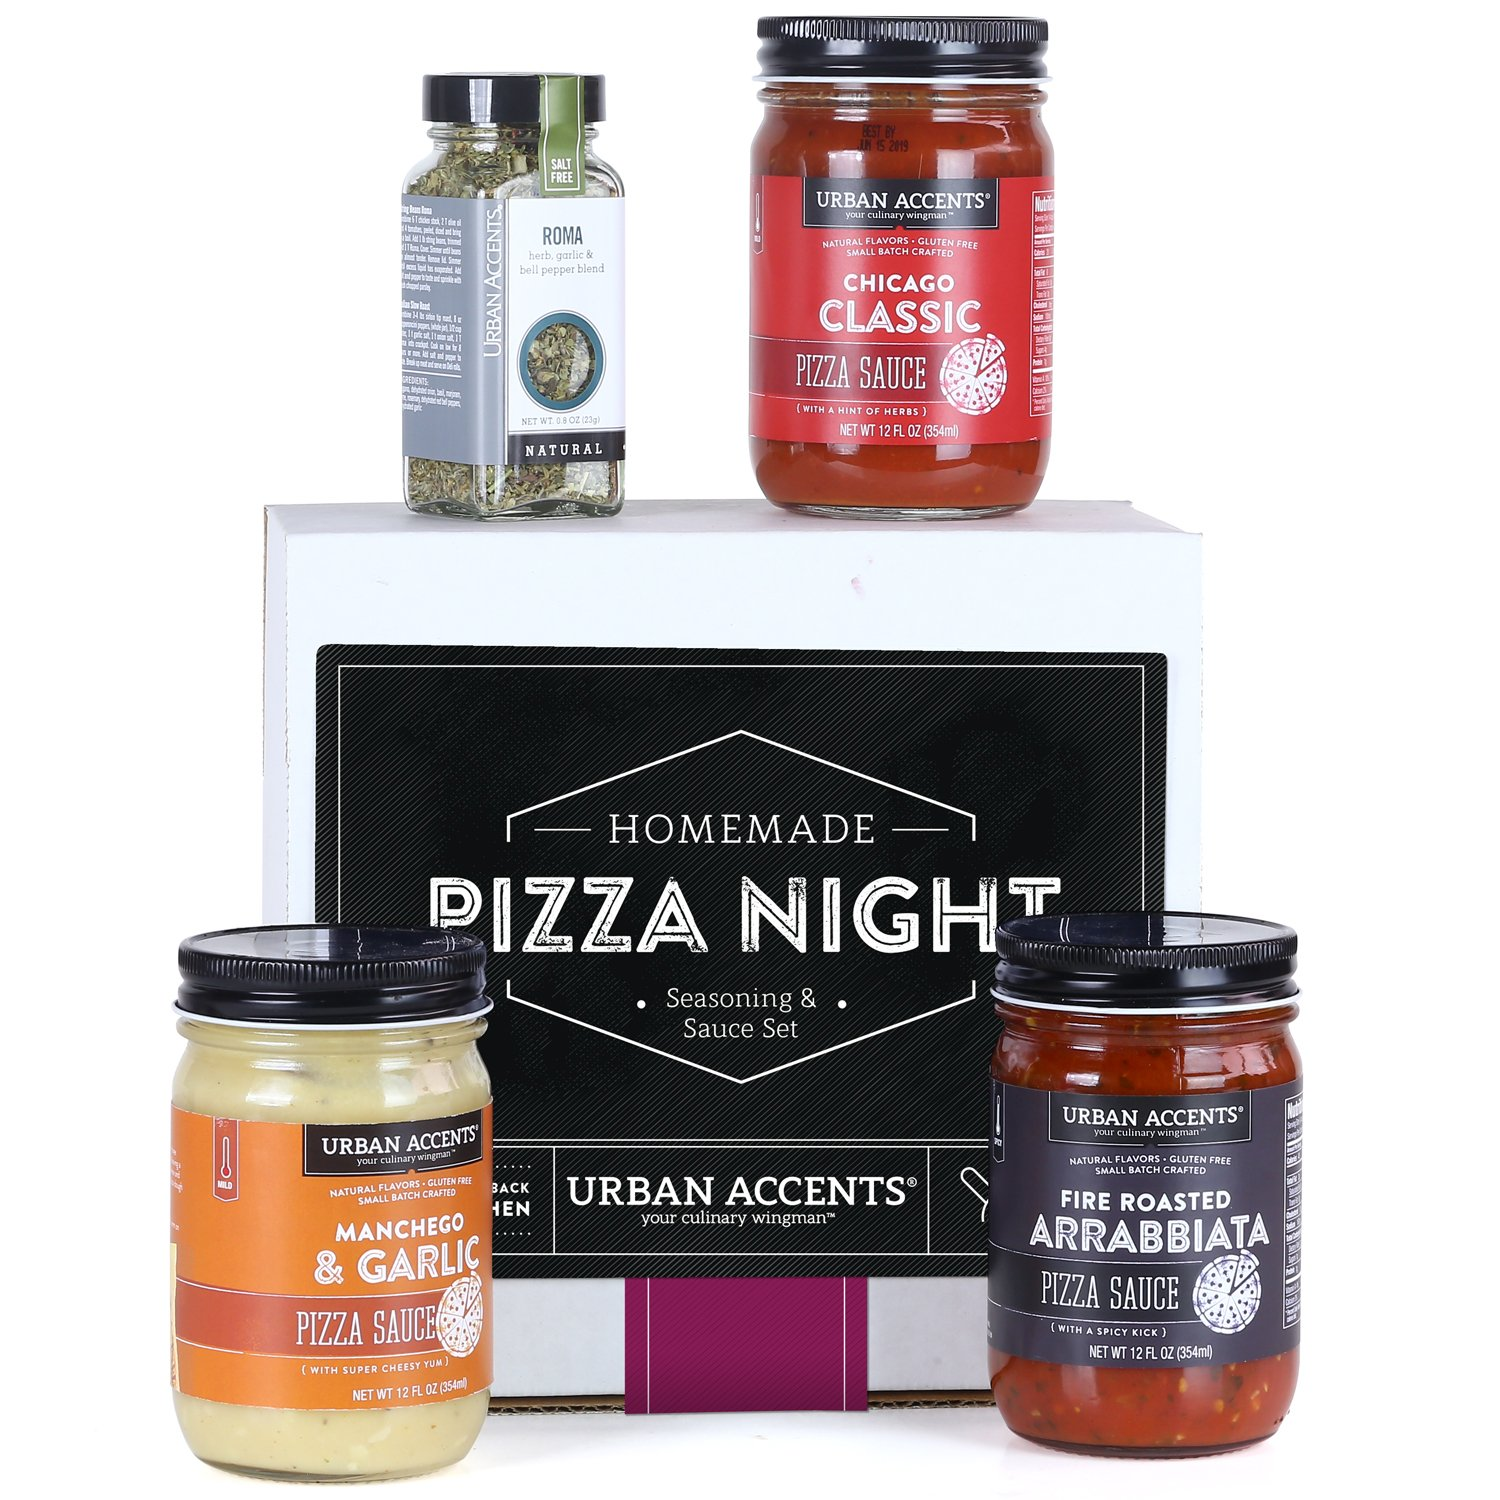 Urban Accents HOMEMADE PIZZA NIGHT Sauce and Seasoning Set, Hostess Gift For Any Occasion